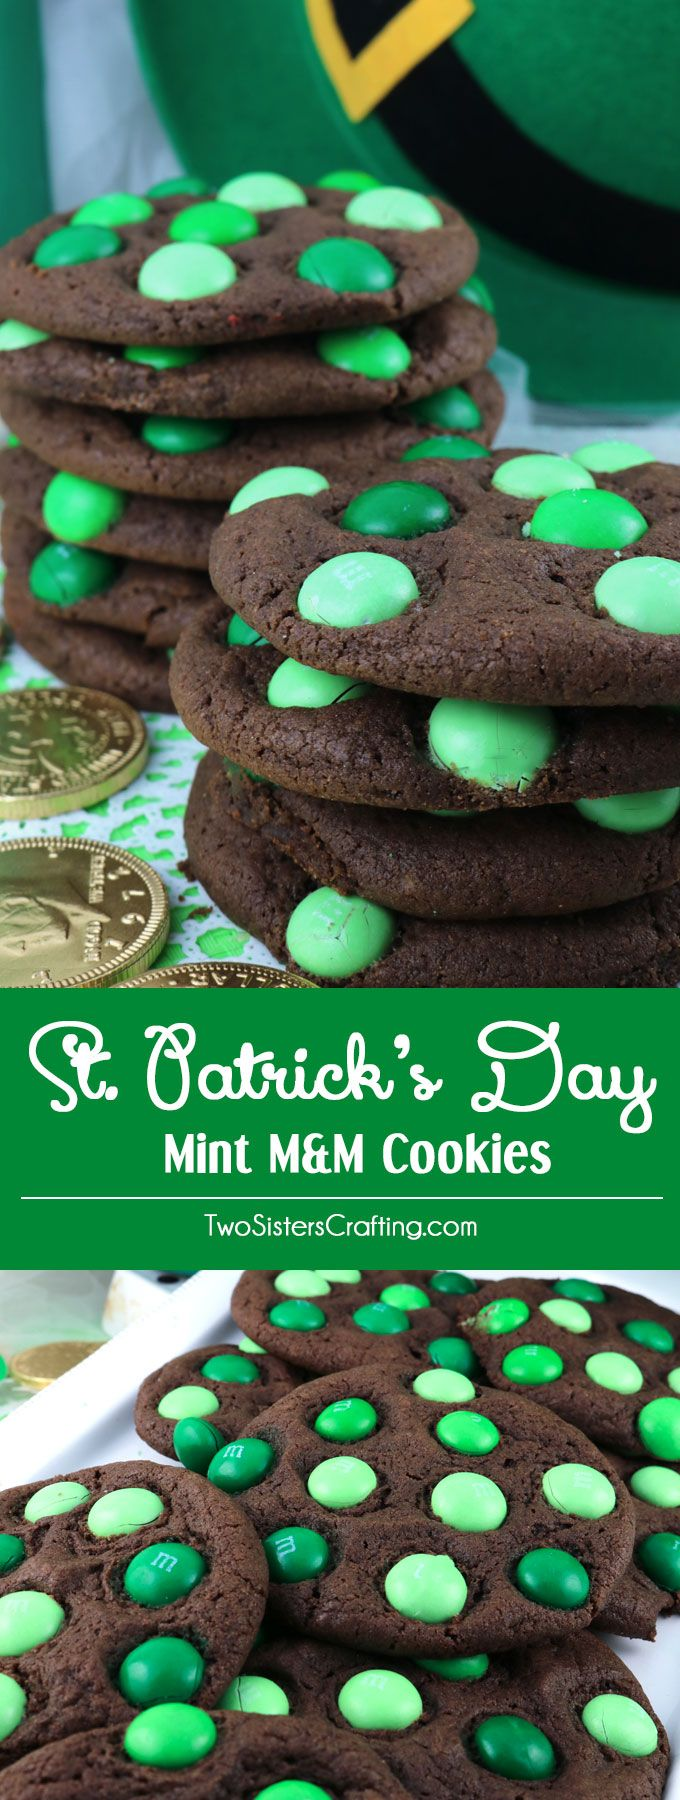 St. Patrick's Day Mint M&M Cookies - a fun and colorful St. Patrick's Day dessert